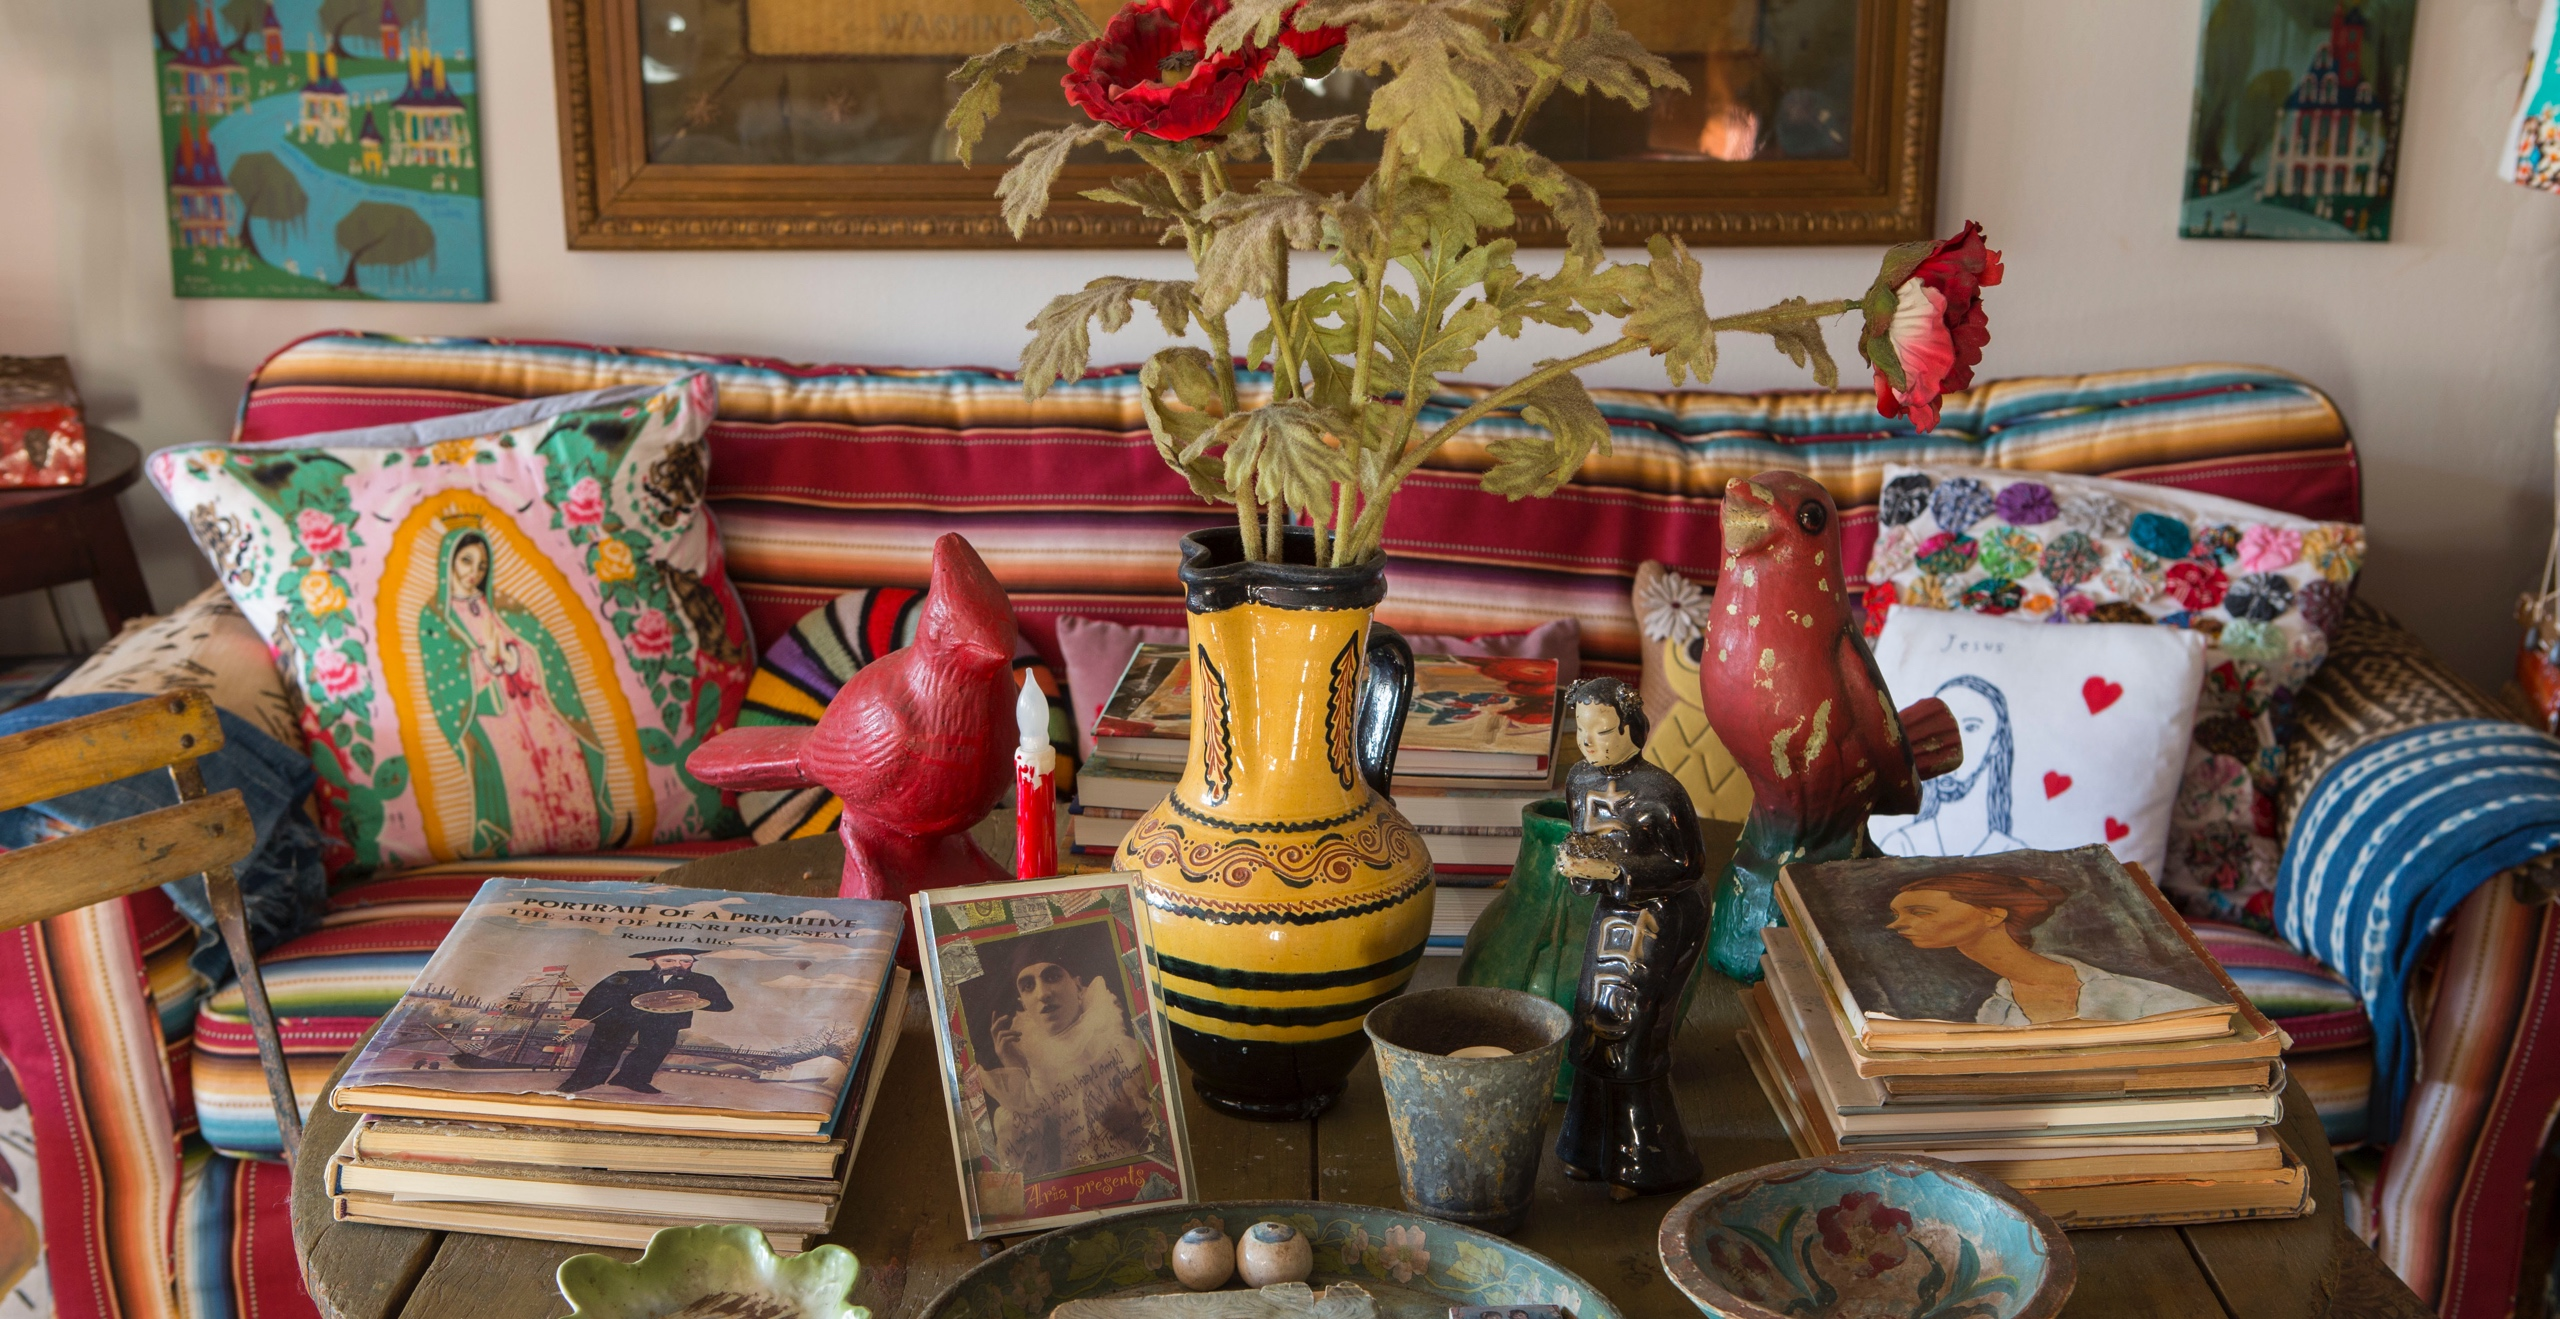 In the author's New York City apartment, an eclectic tabletop exhibit of beloved flea market finds, souvenirs of travel, and gifts from friends